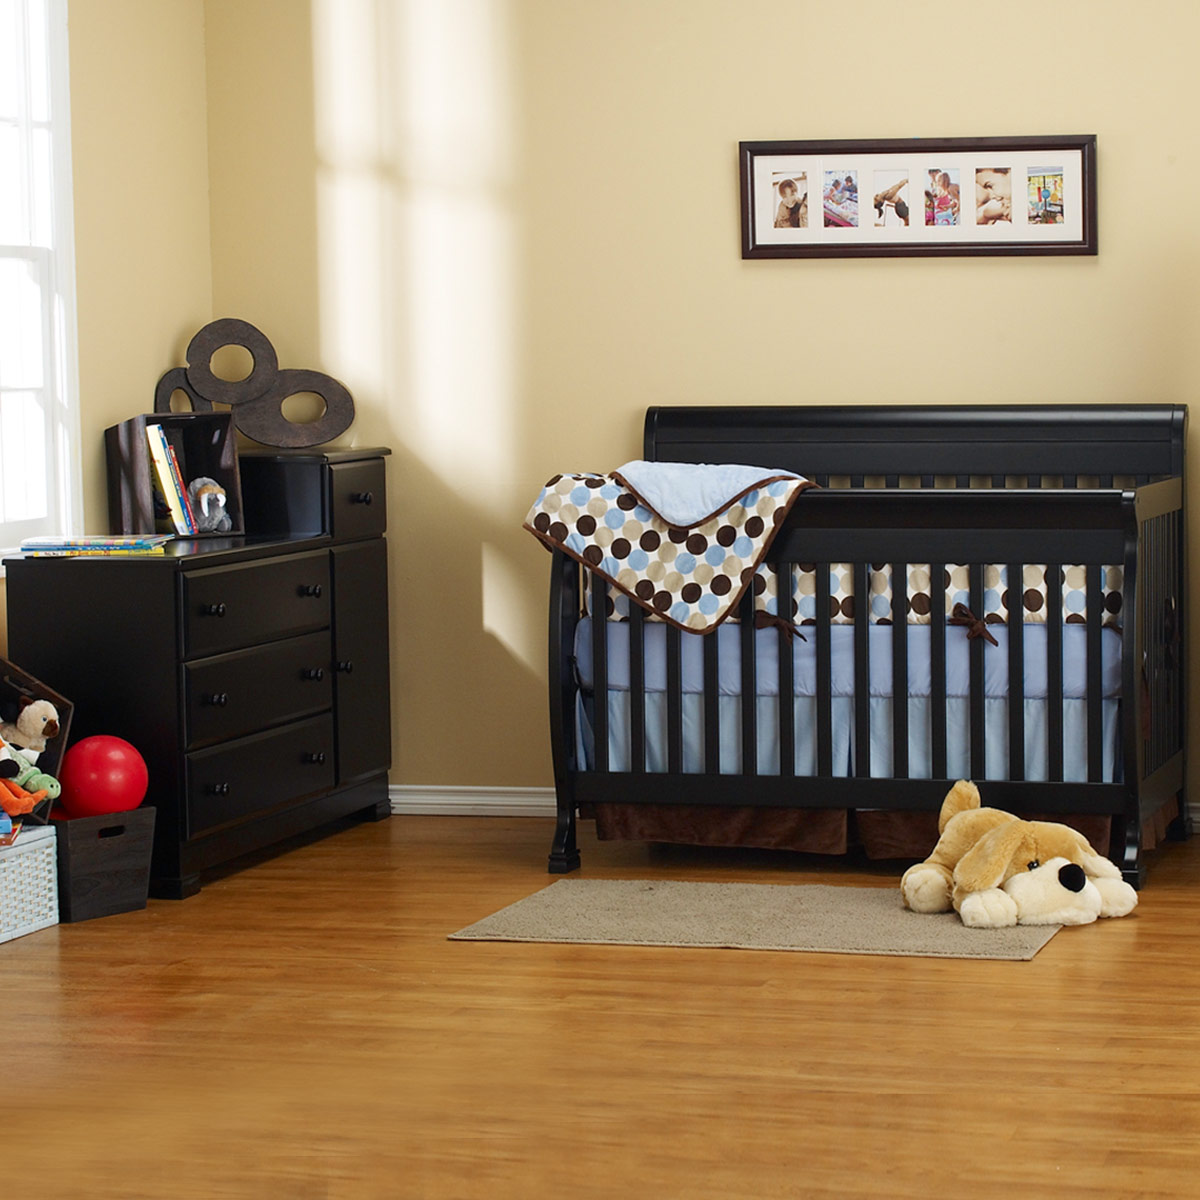 cribs toddler davinci wood l rail conversion in convertible kalani includes crib espresso with kit htm baby bed